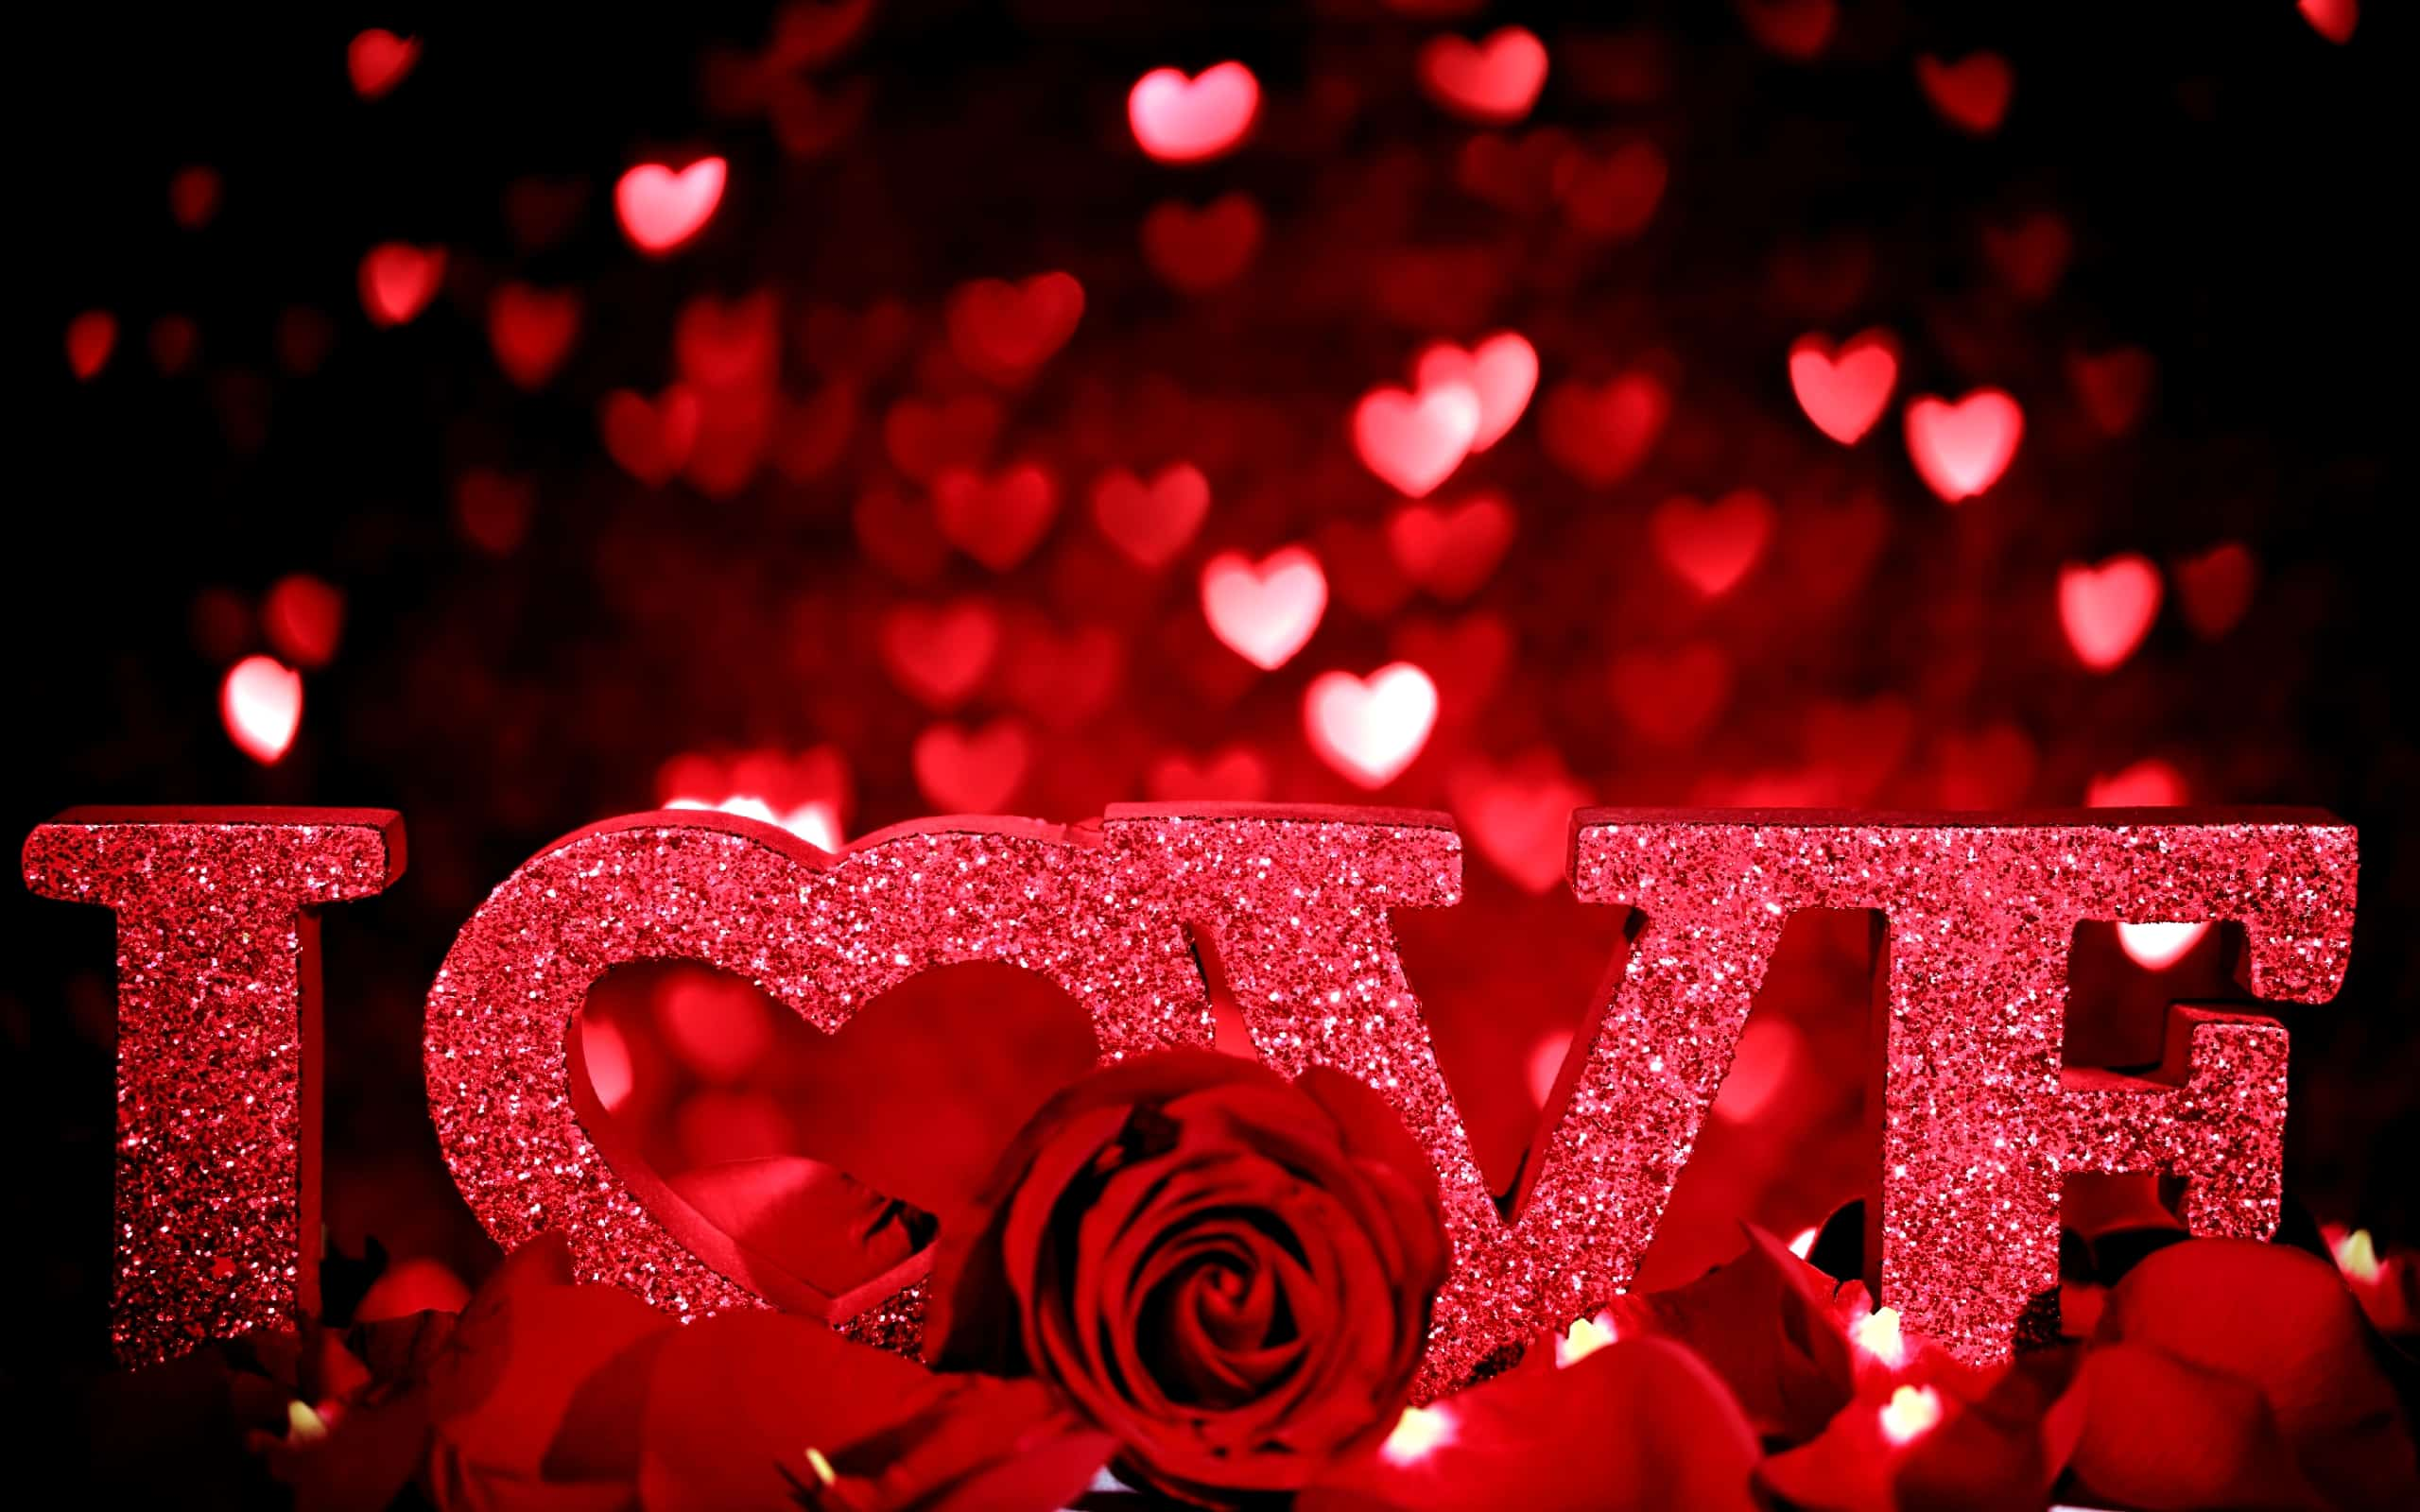 Romantic Love Images For Him